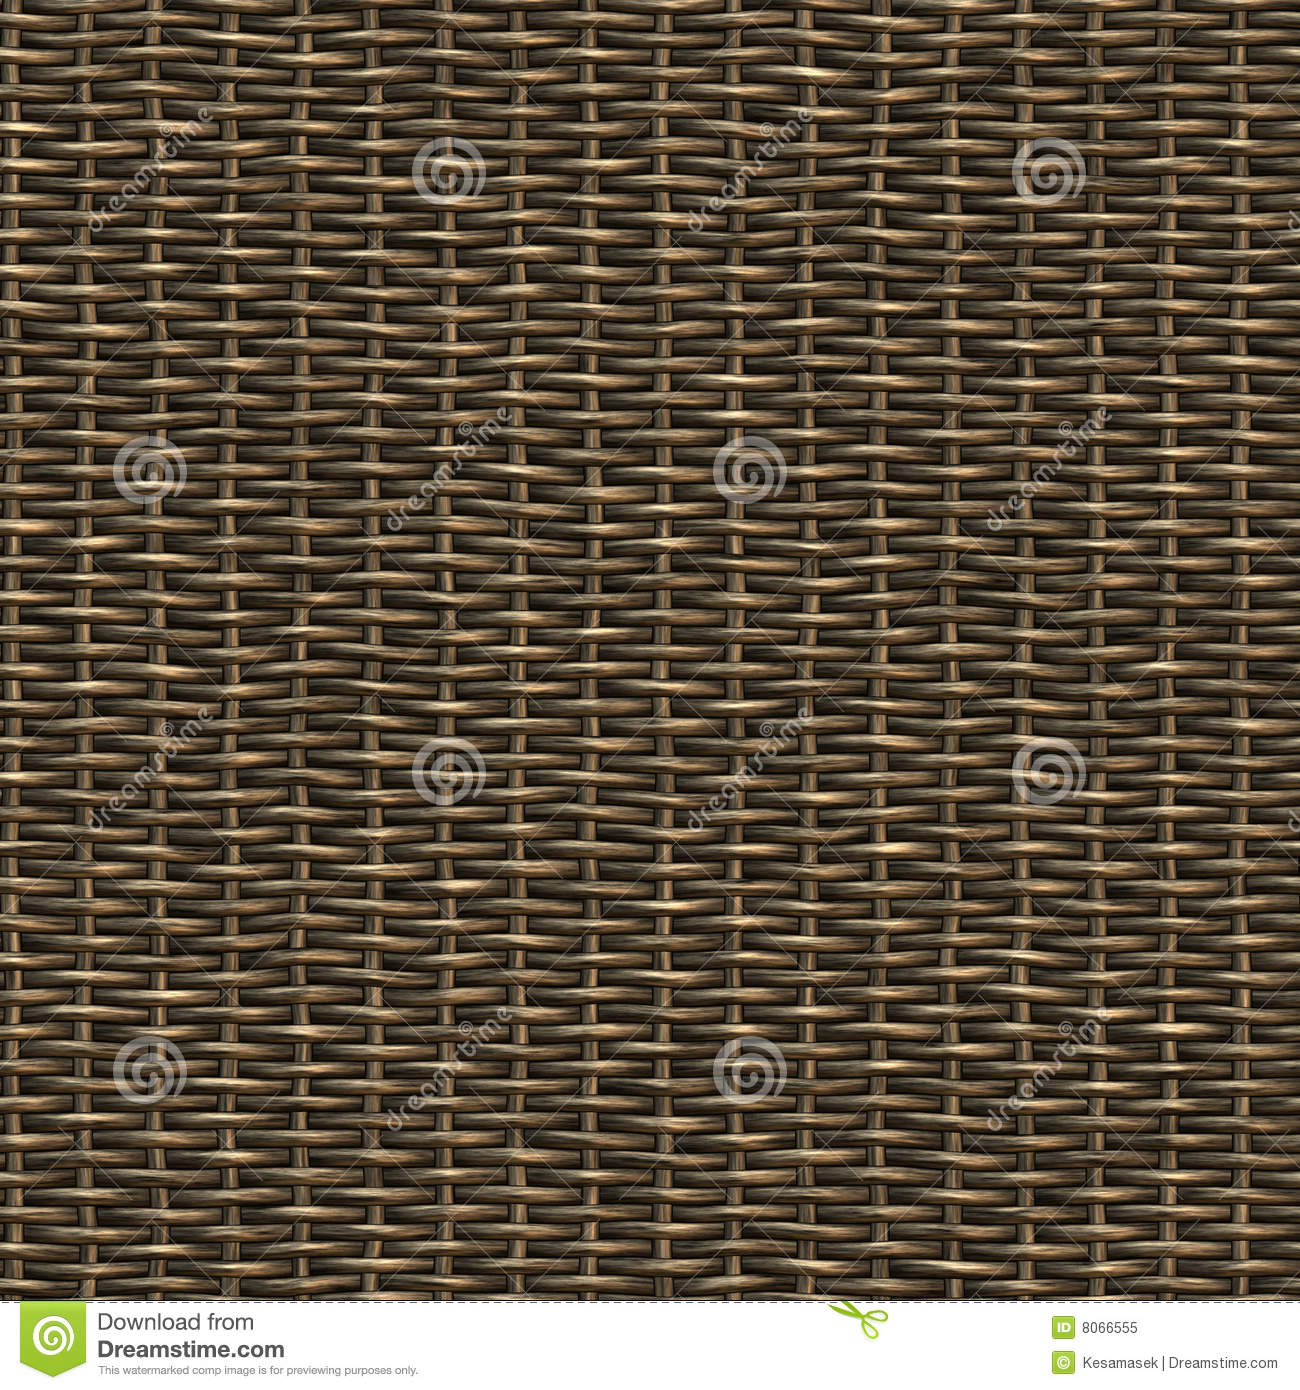 Seamless woven wicker material